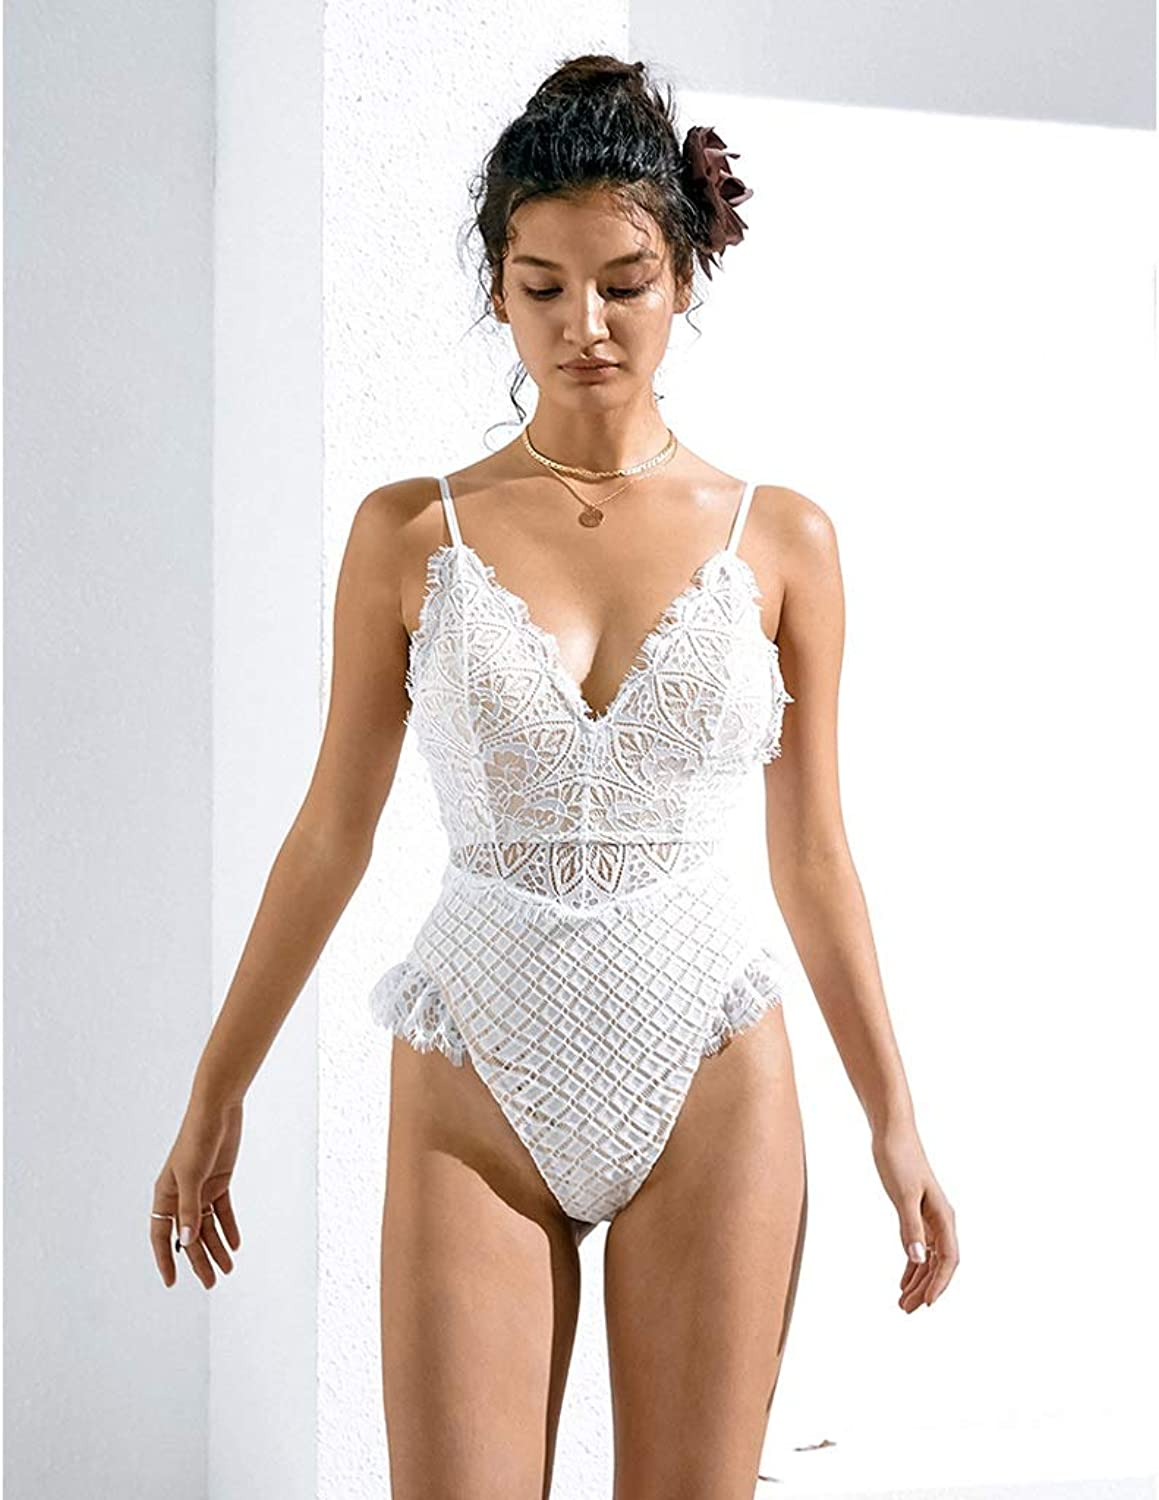 Hzpxsb White Swimsuit Female Conservative Cover Belly Slim Backless Sexy lace onePiece Swimsuit Swimsuit (Size   S)